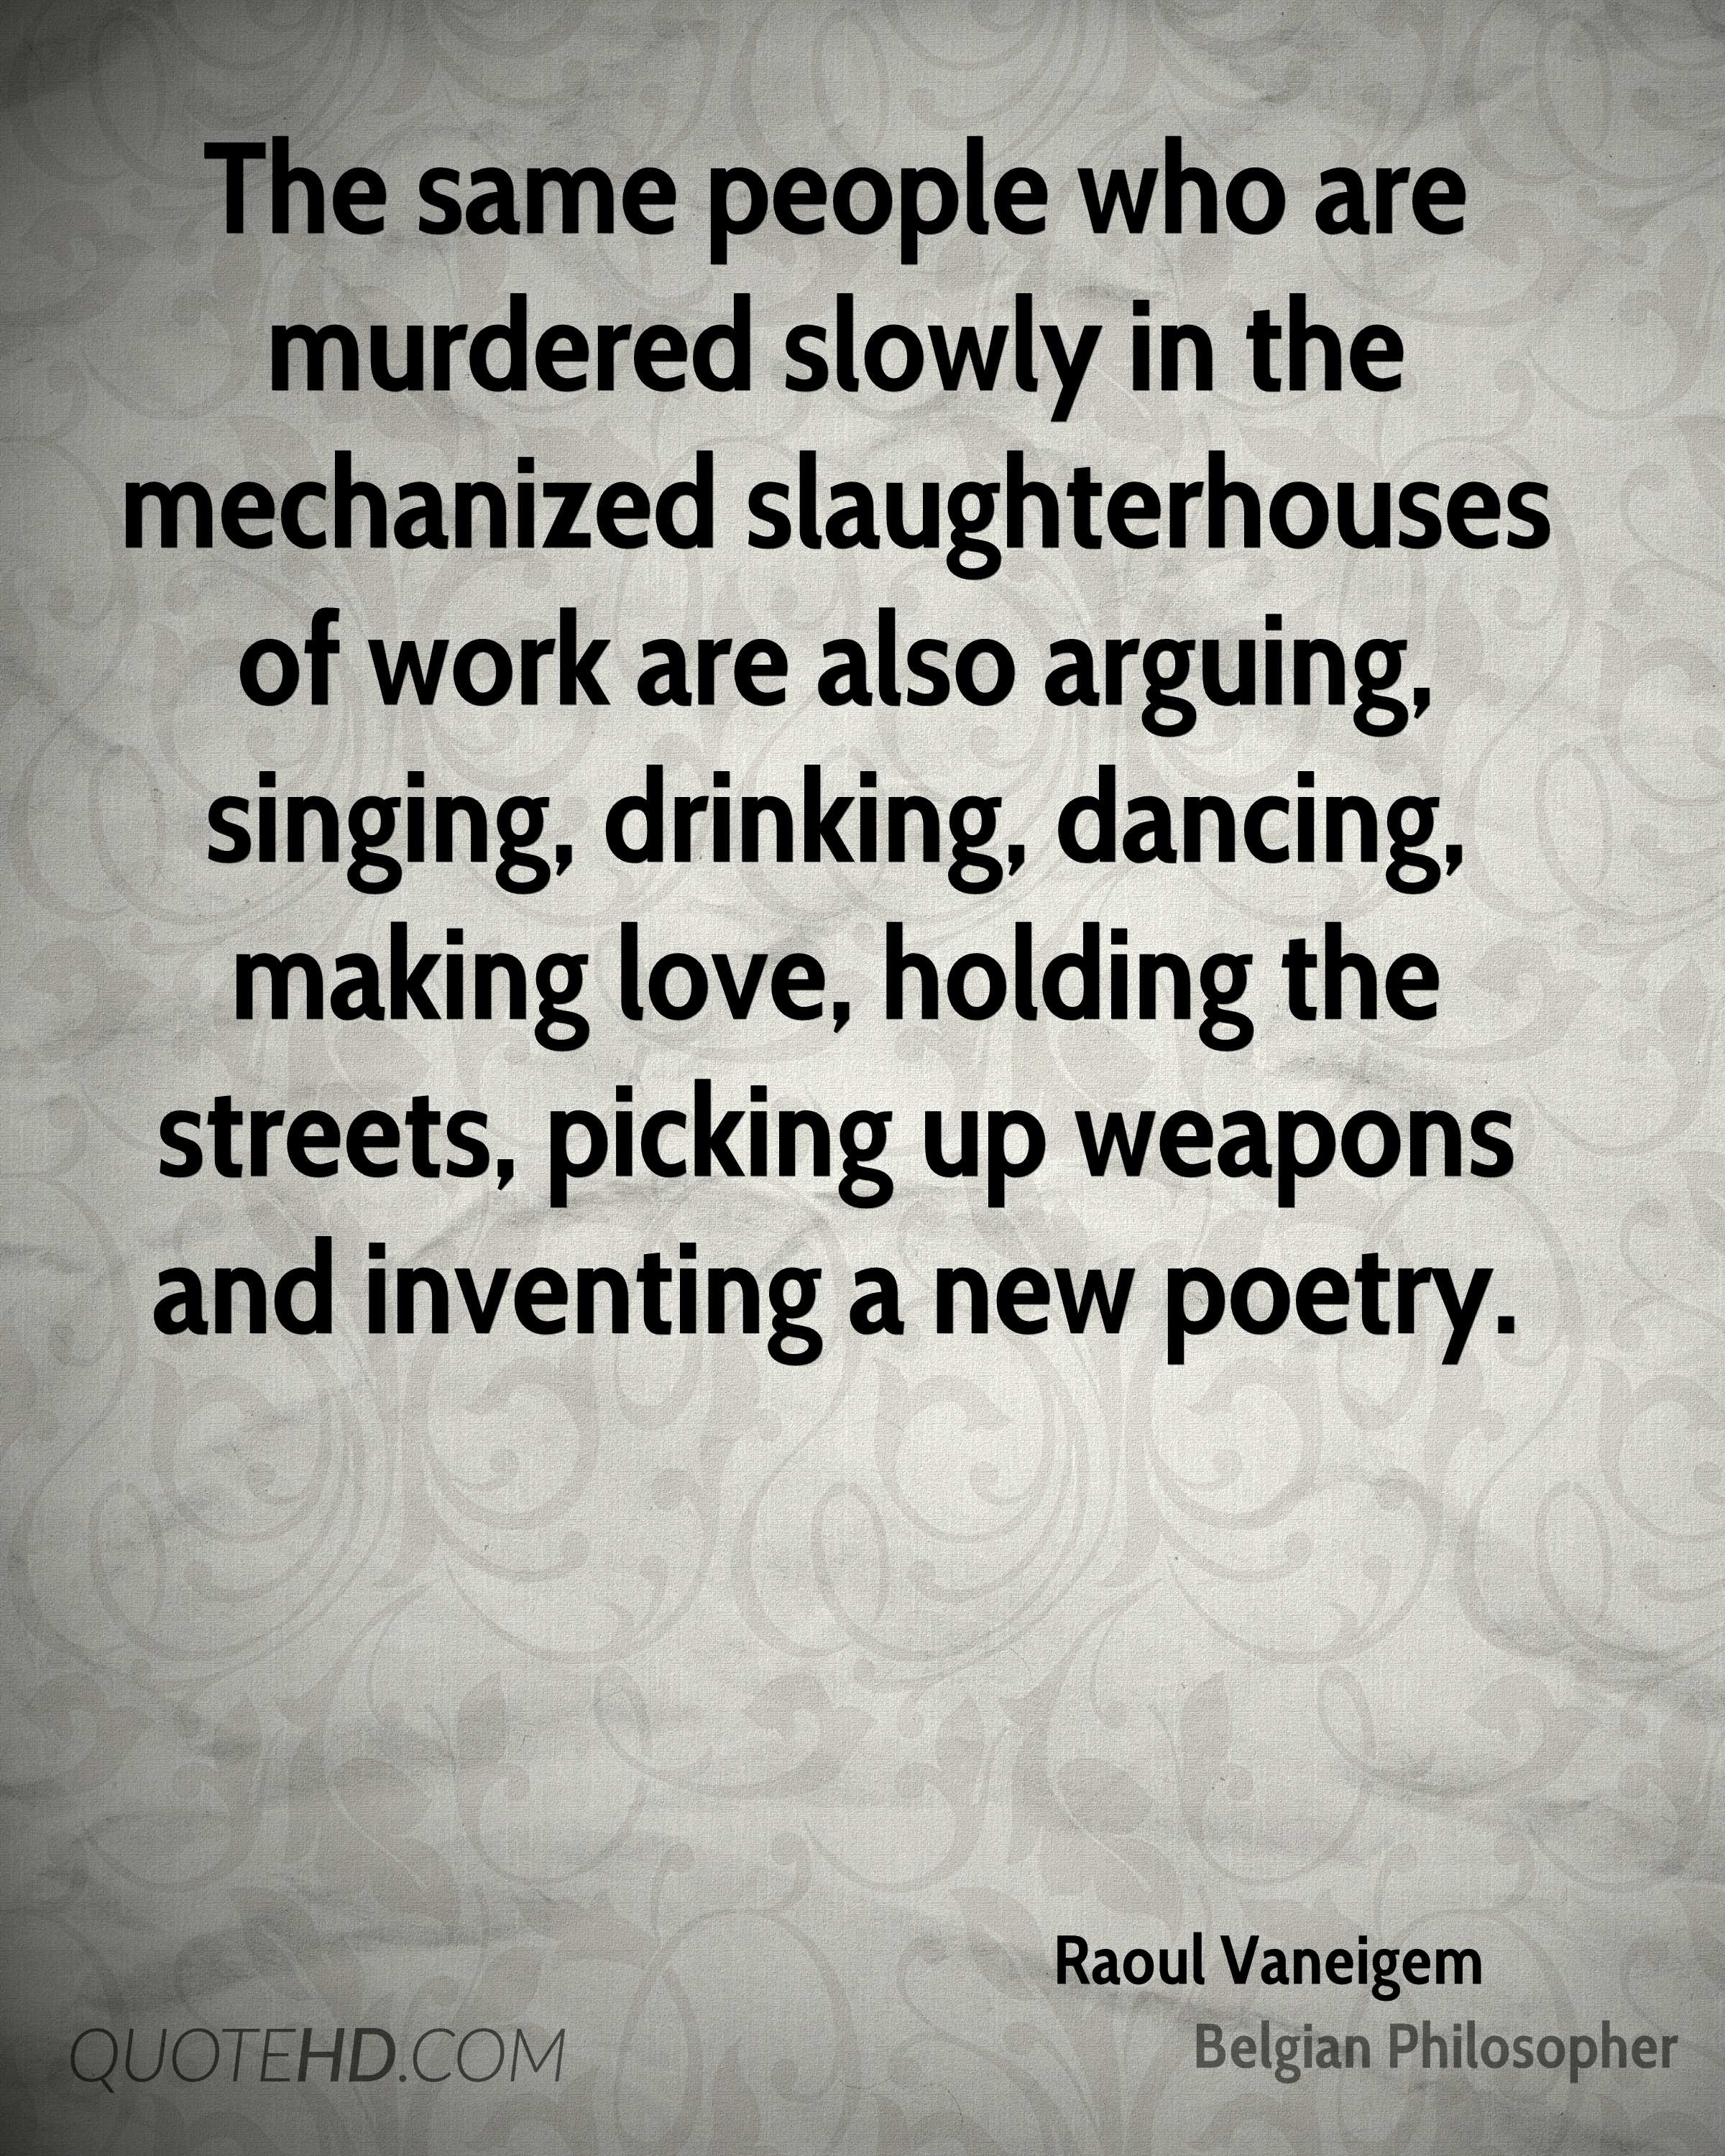 The same people who are murdered slowly in the mechanized slaughterhouses of work are also arguing, singing, drinking, dancing, making love, holding the streets, picking up weapons and inventing a new poetry.